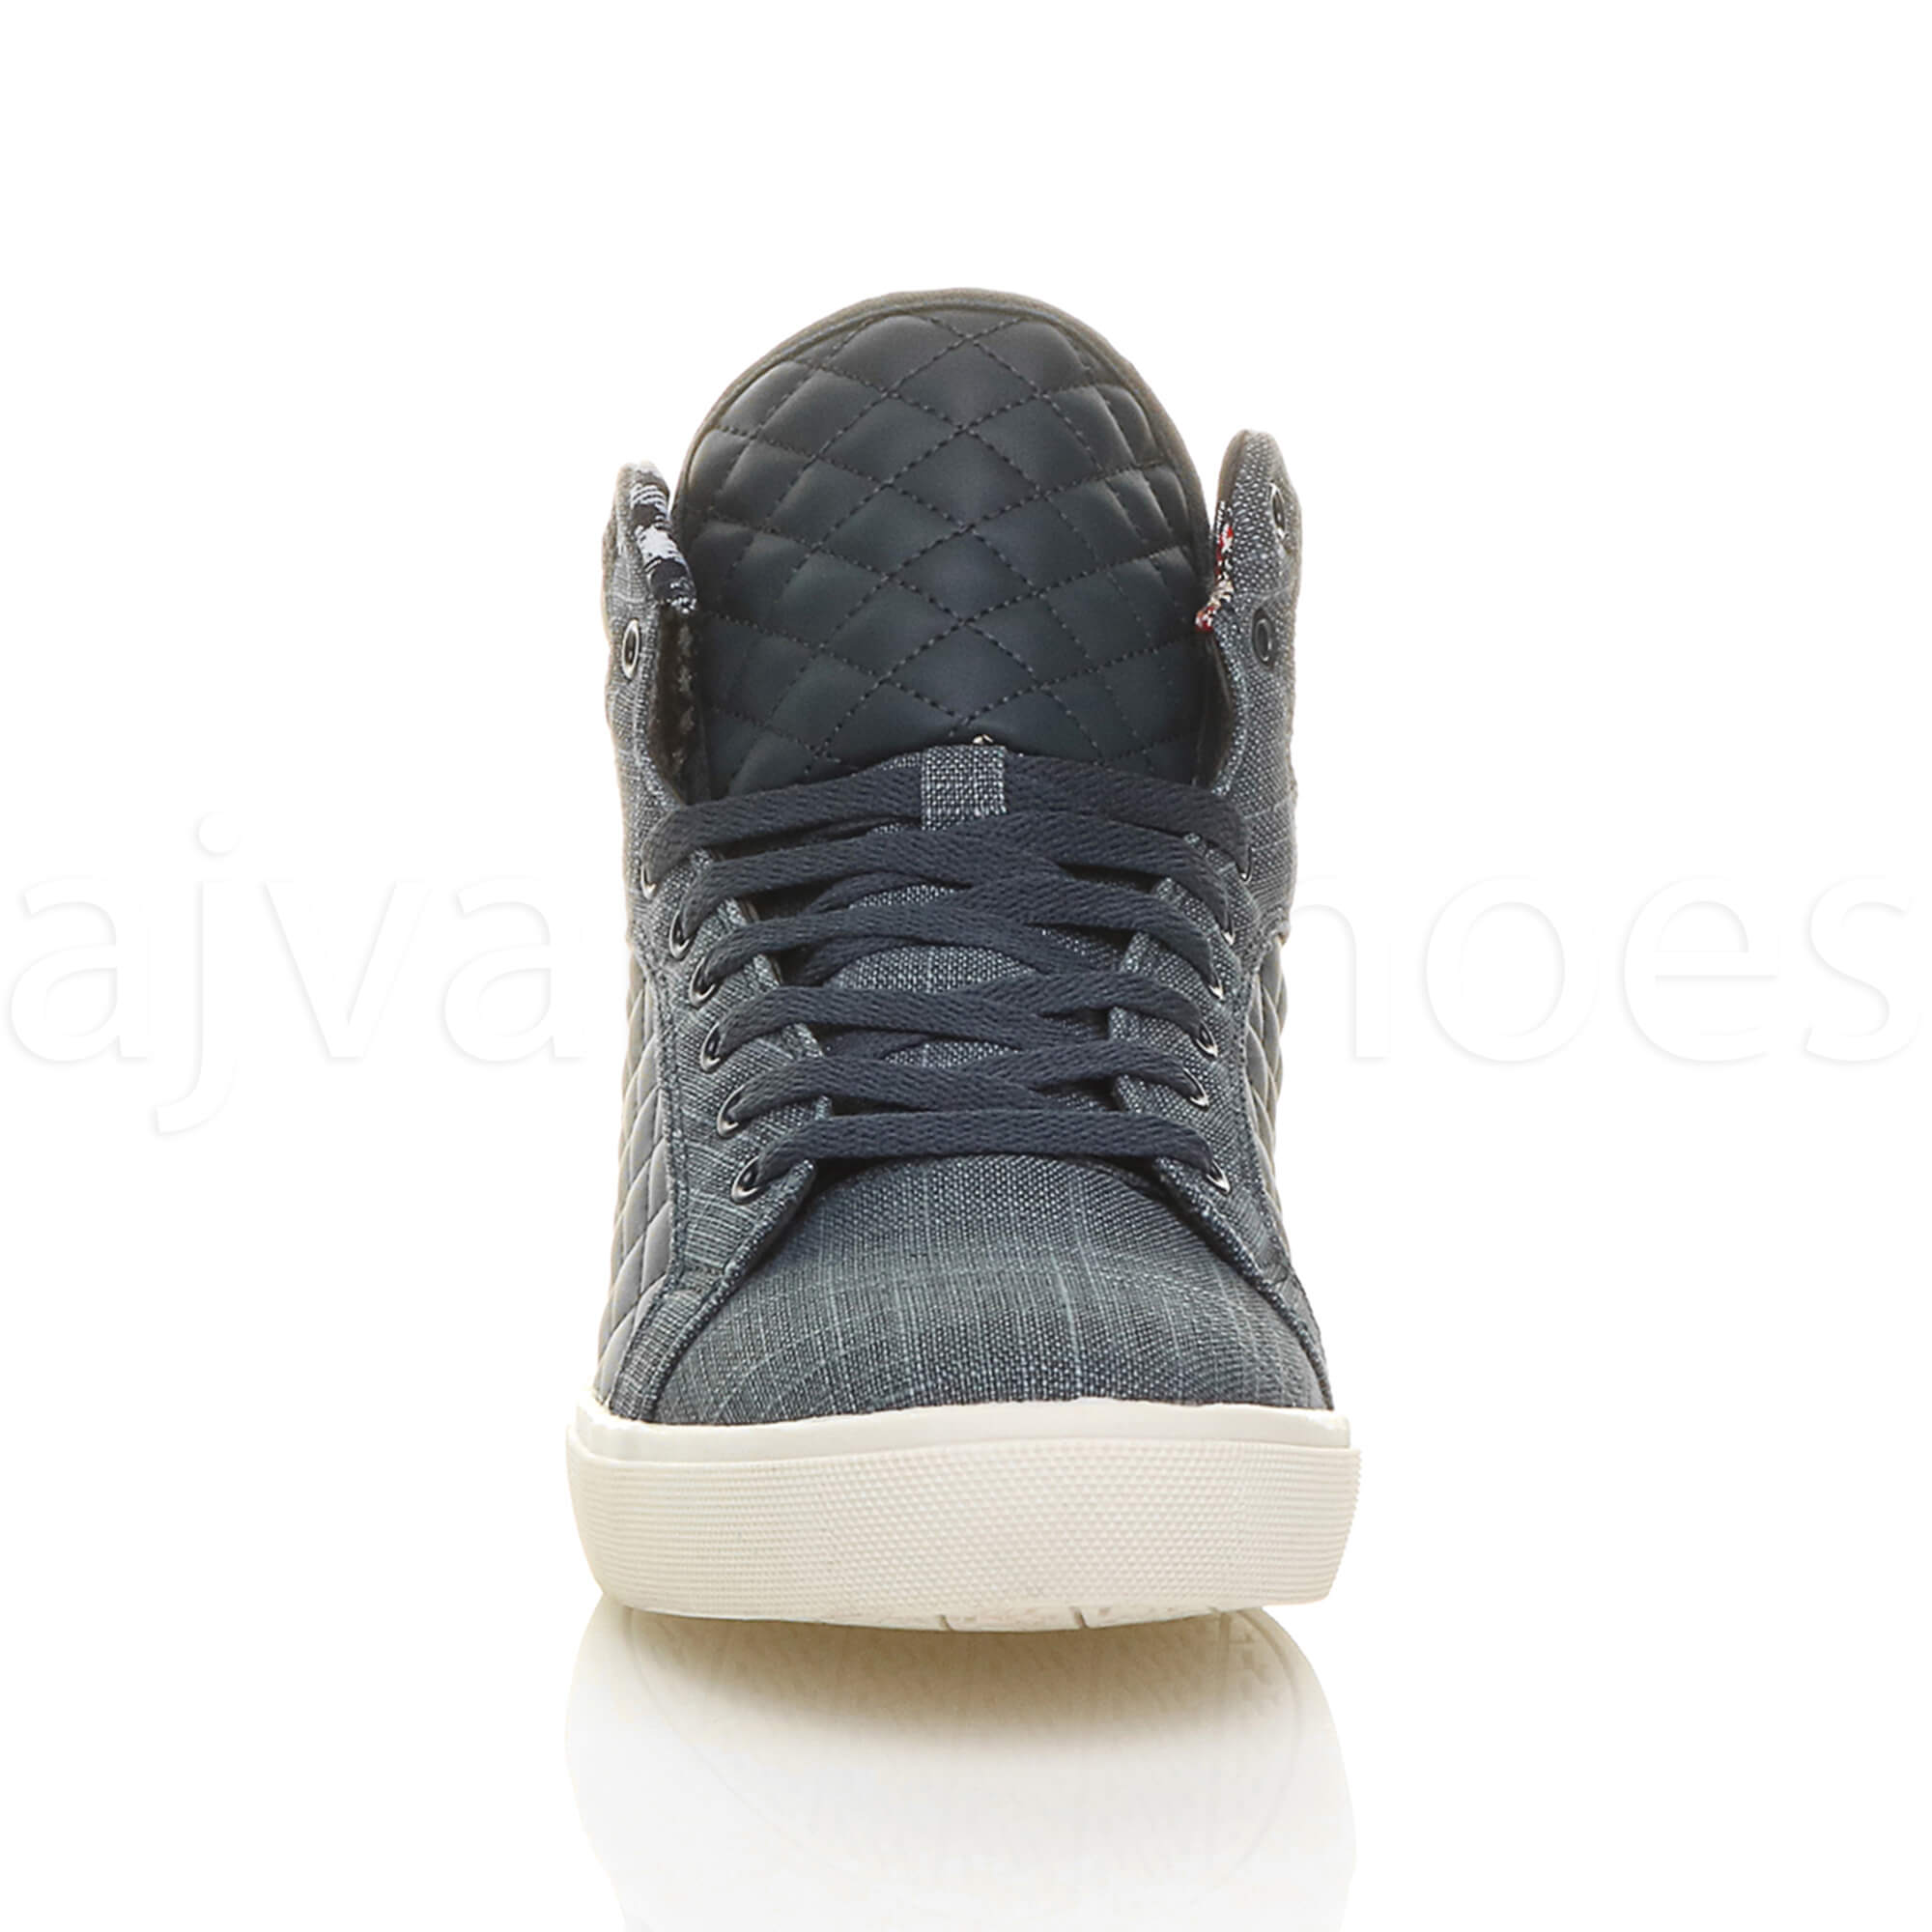 MENS-QUILTED-LACE-UP-FLAT-CASUAL-HI-HIGH-TOP-TRAINERS-SHOES-ANKLE-BOOTS-SIZE thumbnail 28